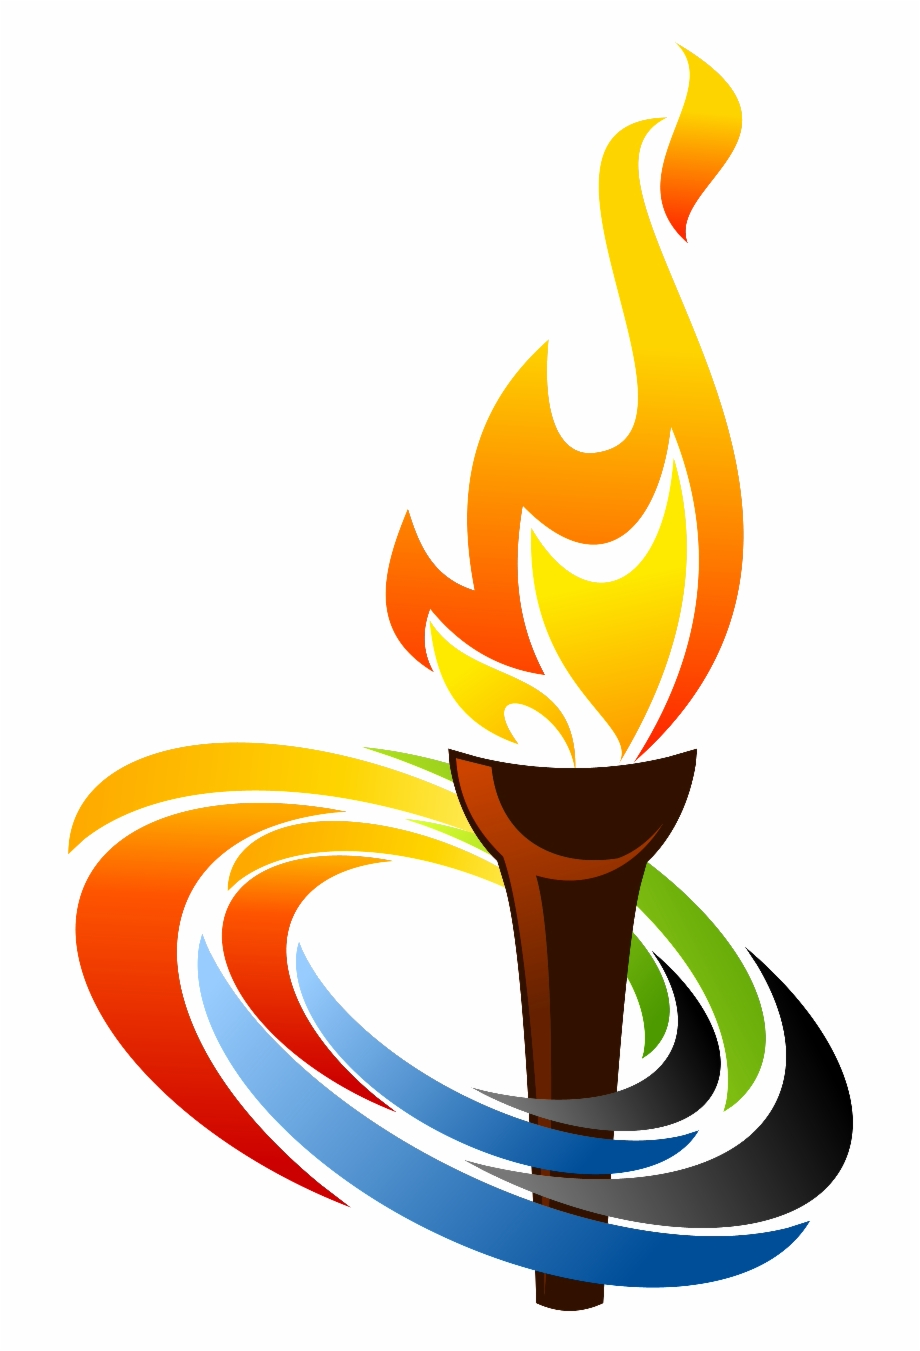 Pics For Torch Flame Png Clipart.